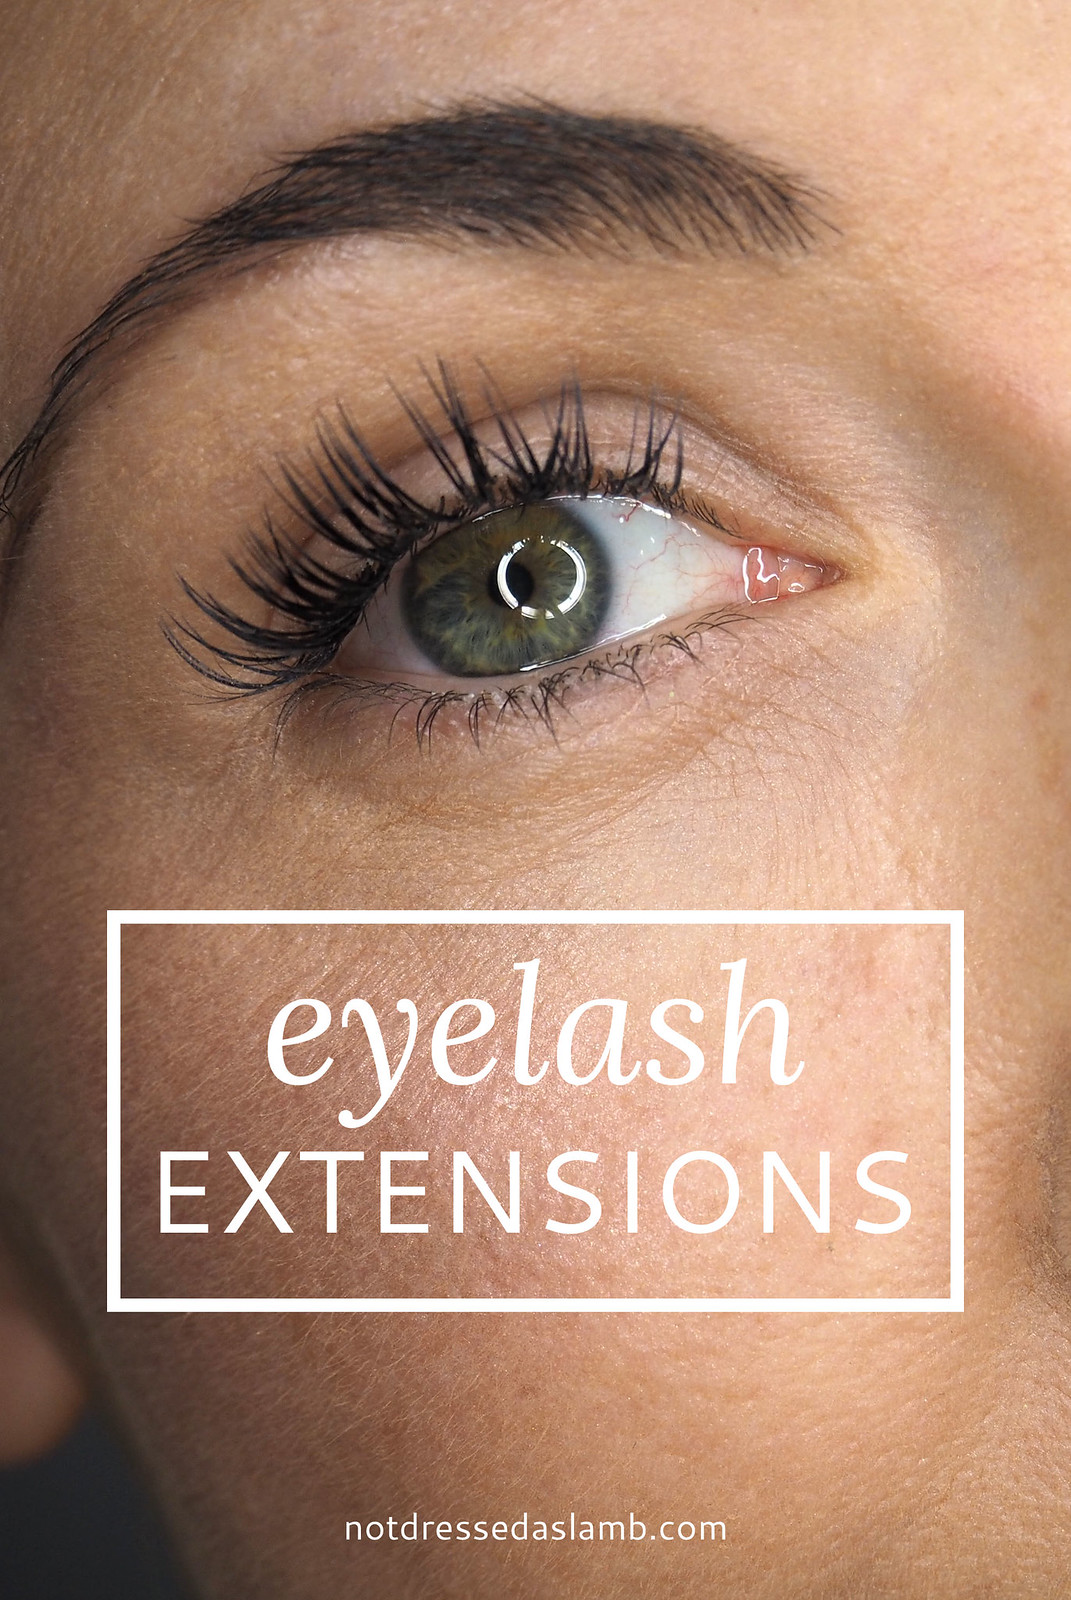 Eyelash extensions: The process | Not Dressed As Lamb, over 40 style